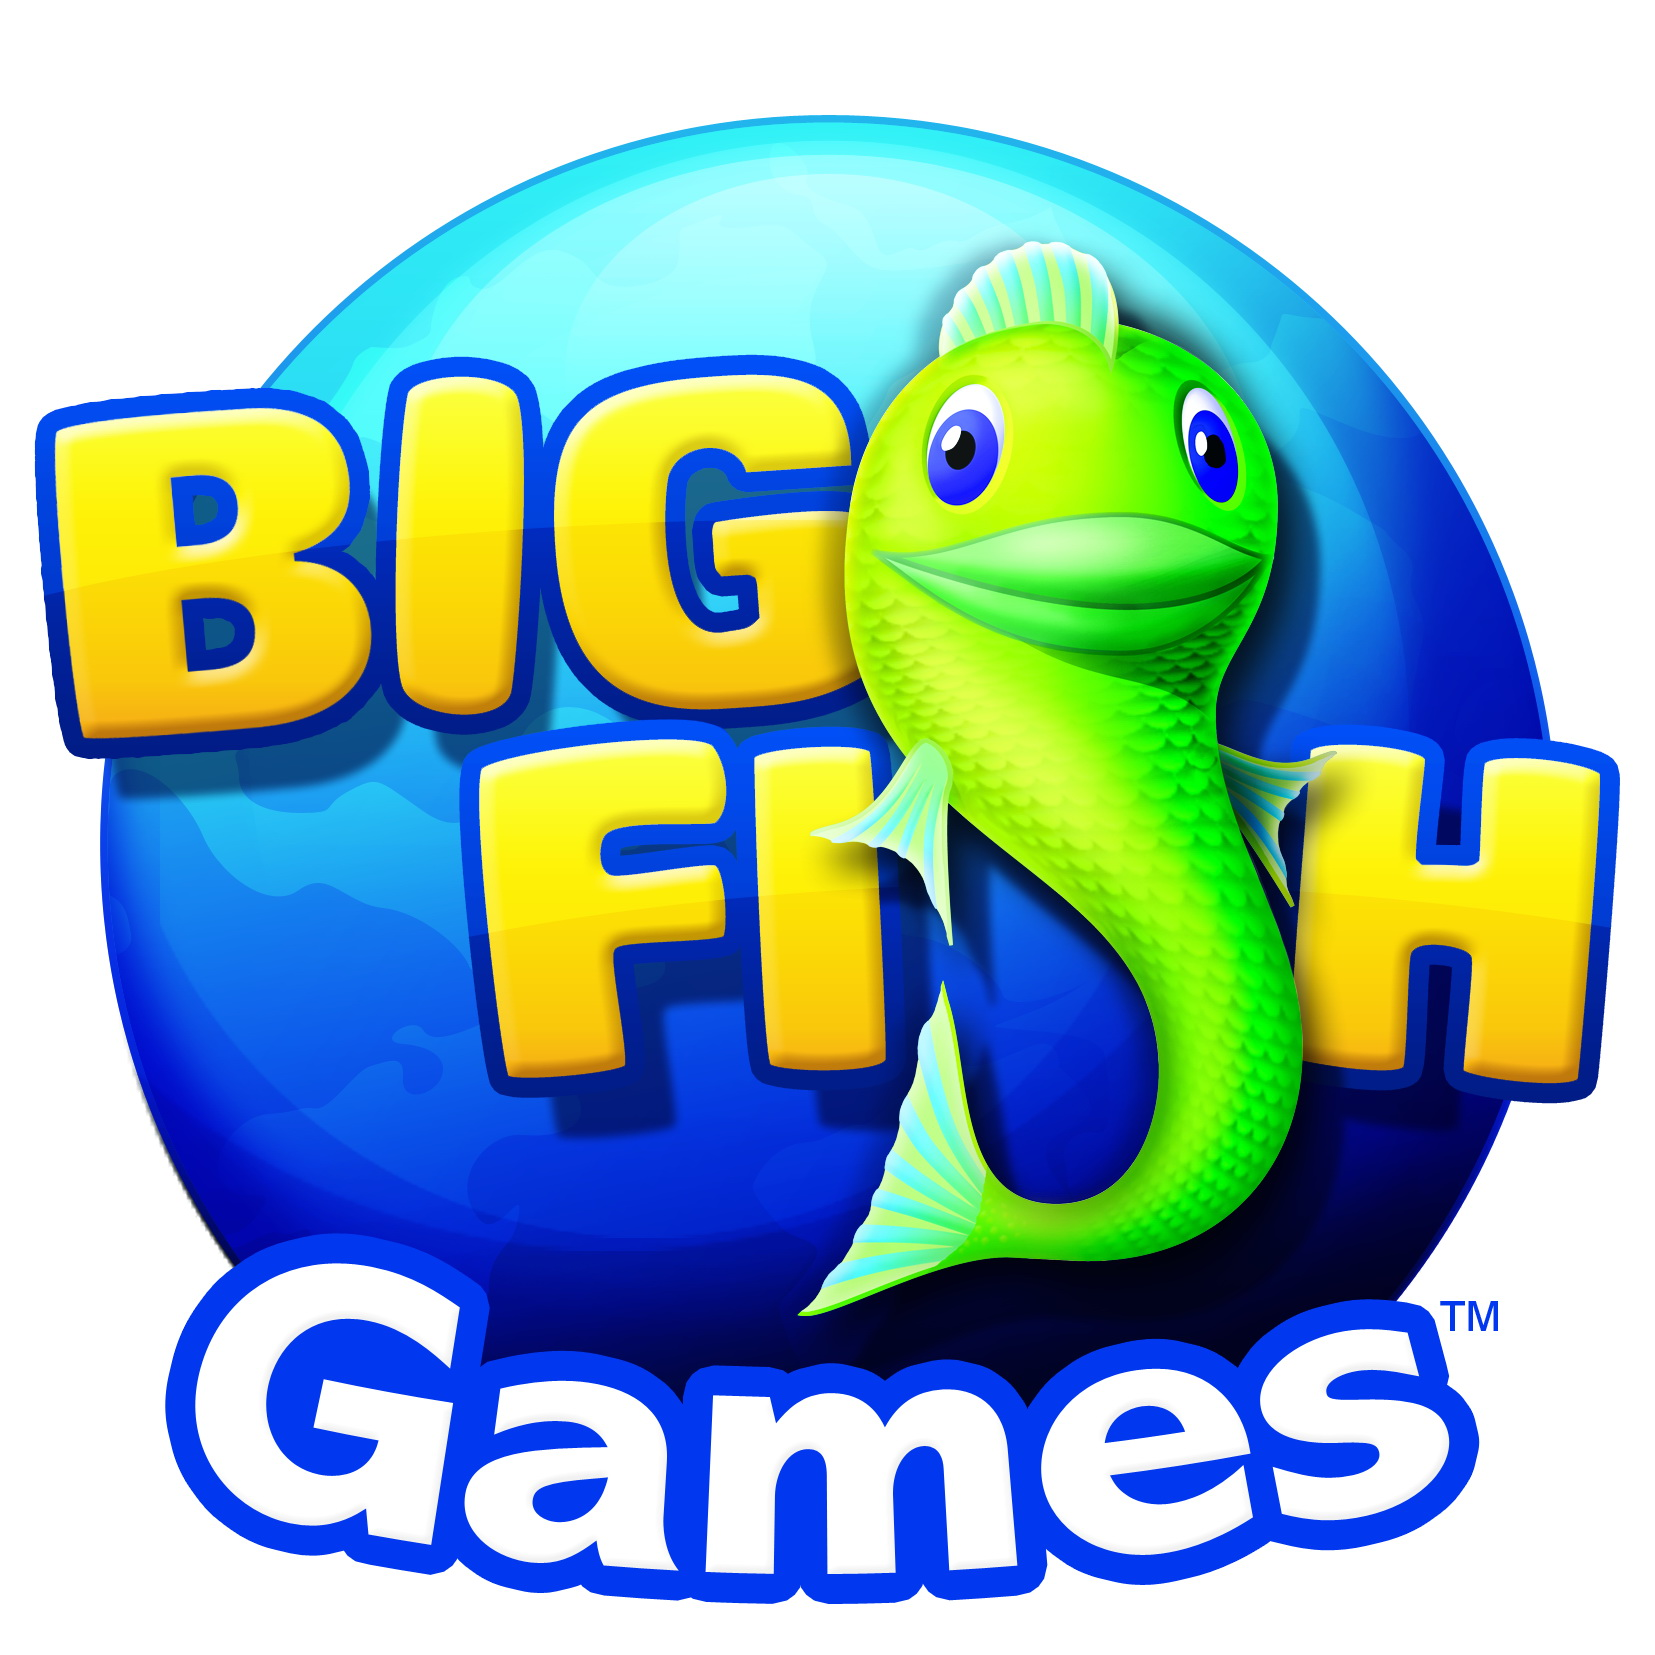 chris campbell and adrian woods big fish games obsolete